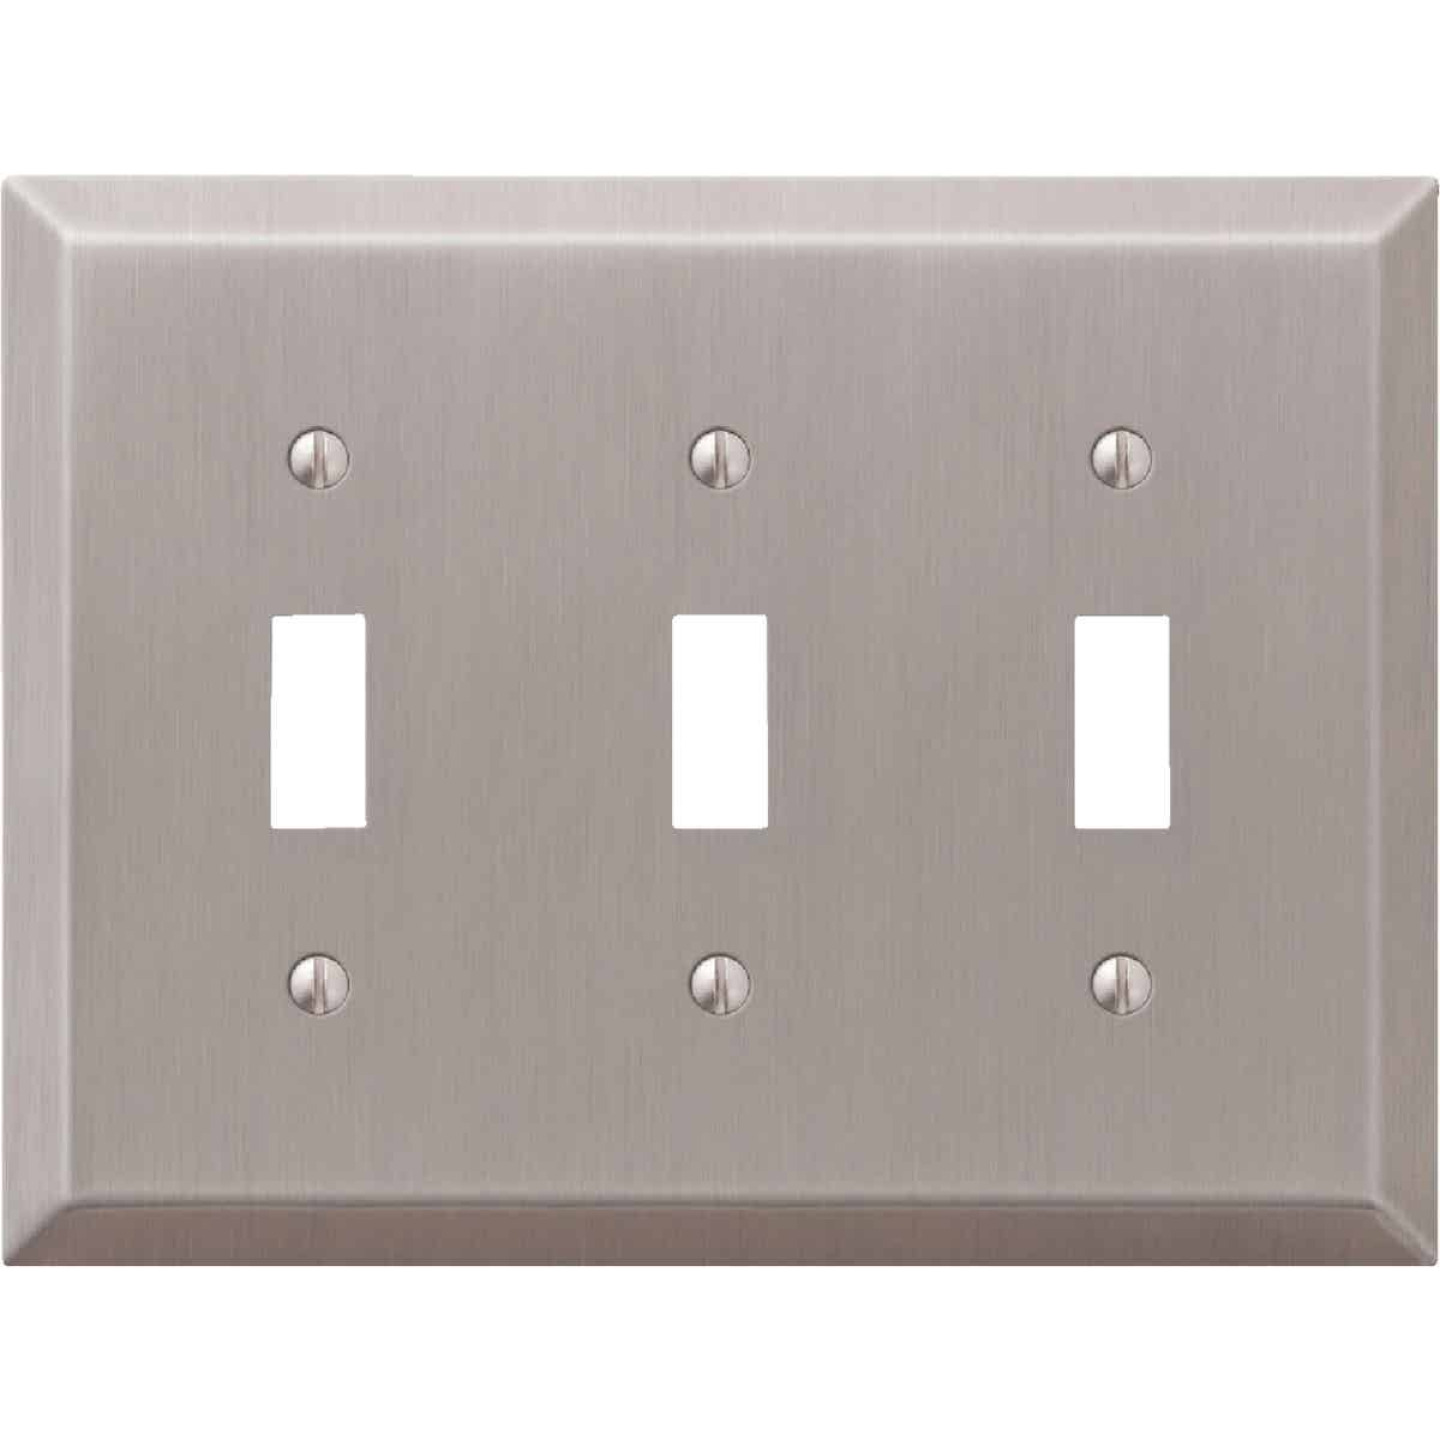 Amerelle 3-Gang Stamped Steel Toggle Switch Wall Plate, Brushed Nickel Image 1